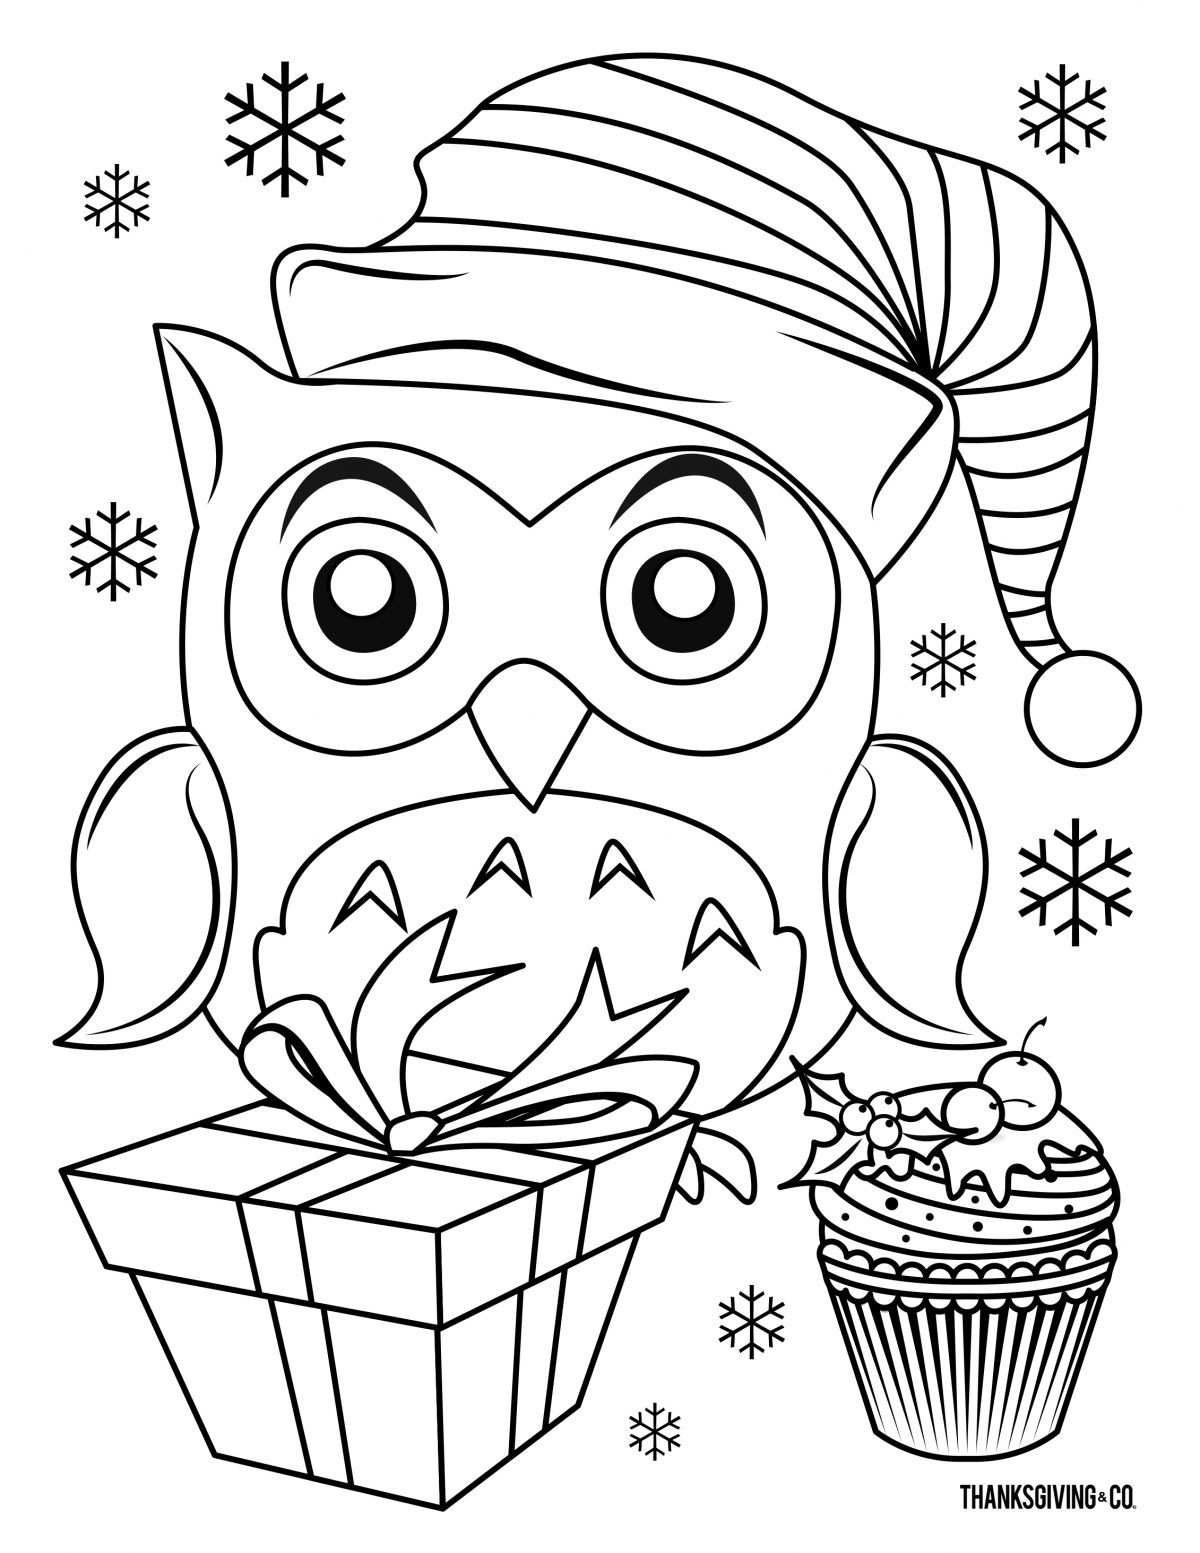 22 Awesome Image Of Christmas Coloring Pages